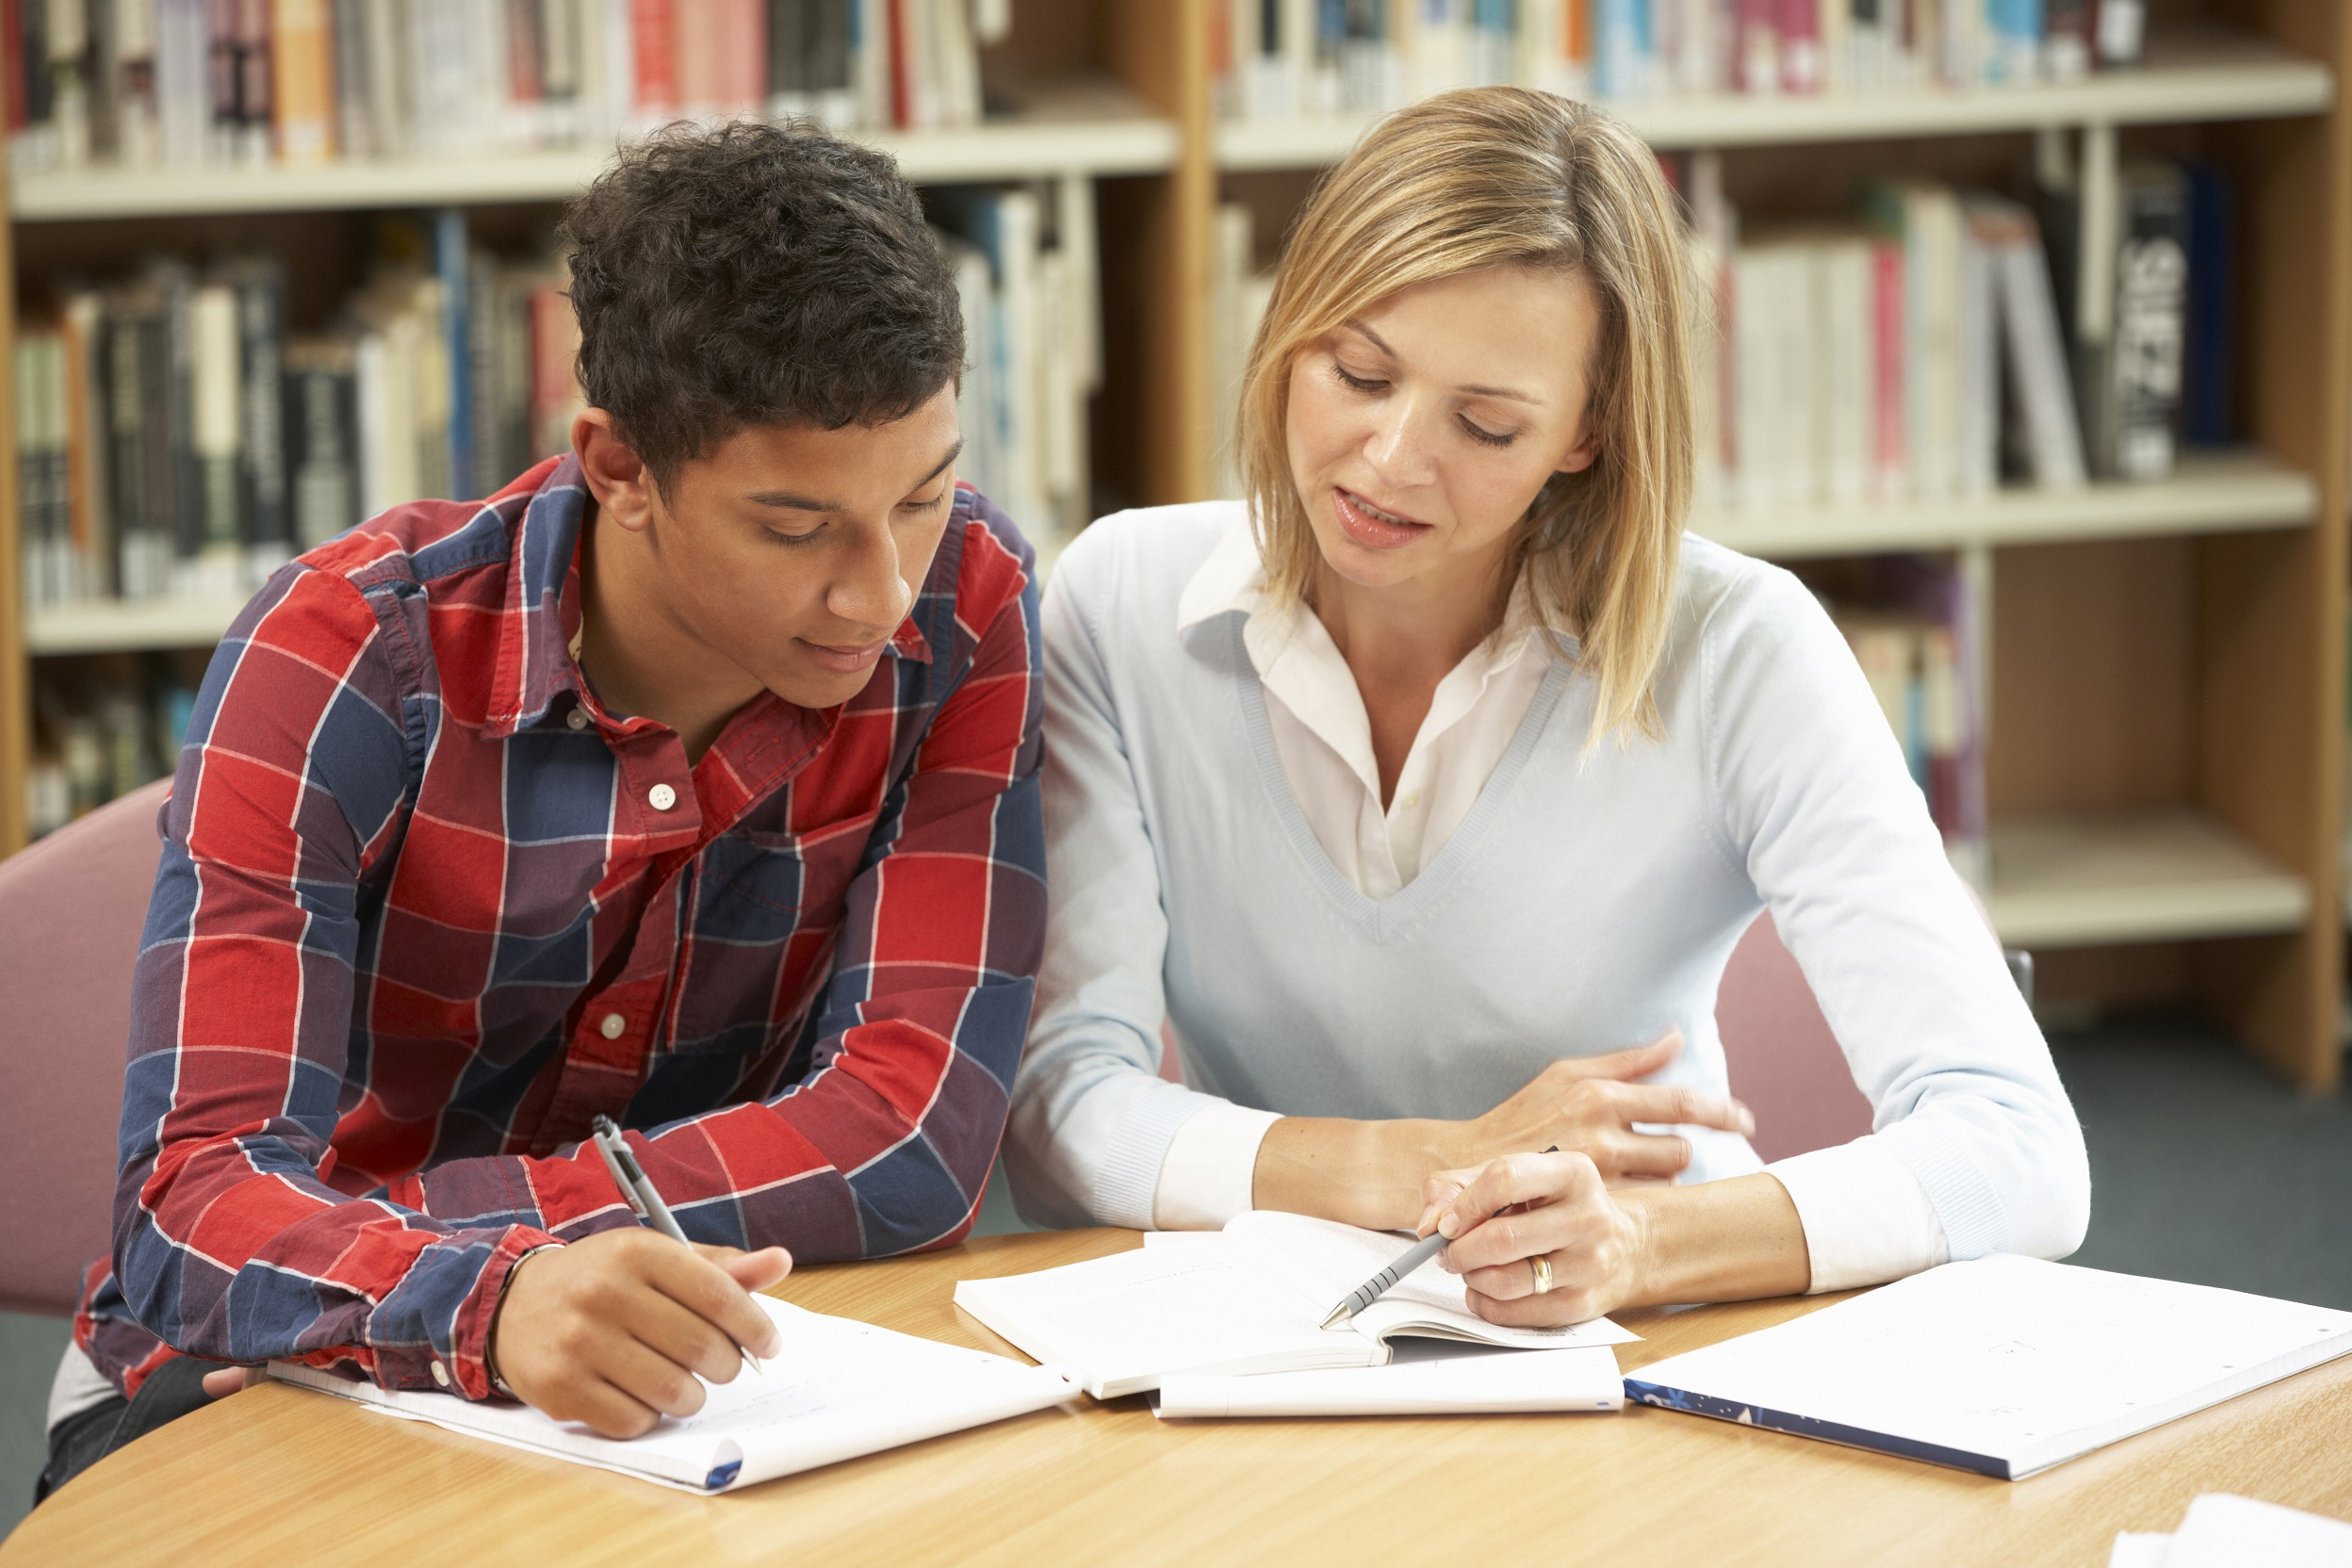 college homework services Order college homework help at pro-paperscom ☝ in case you have many other things to do but stay with your college homework all night long, our writers will be glad to help with your homework 24/7.